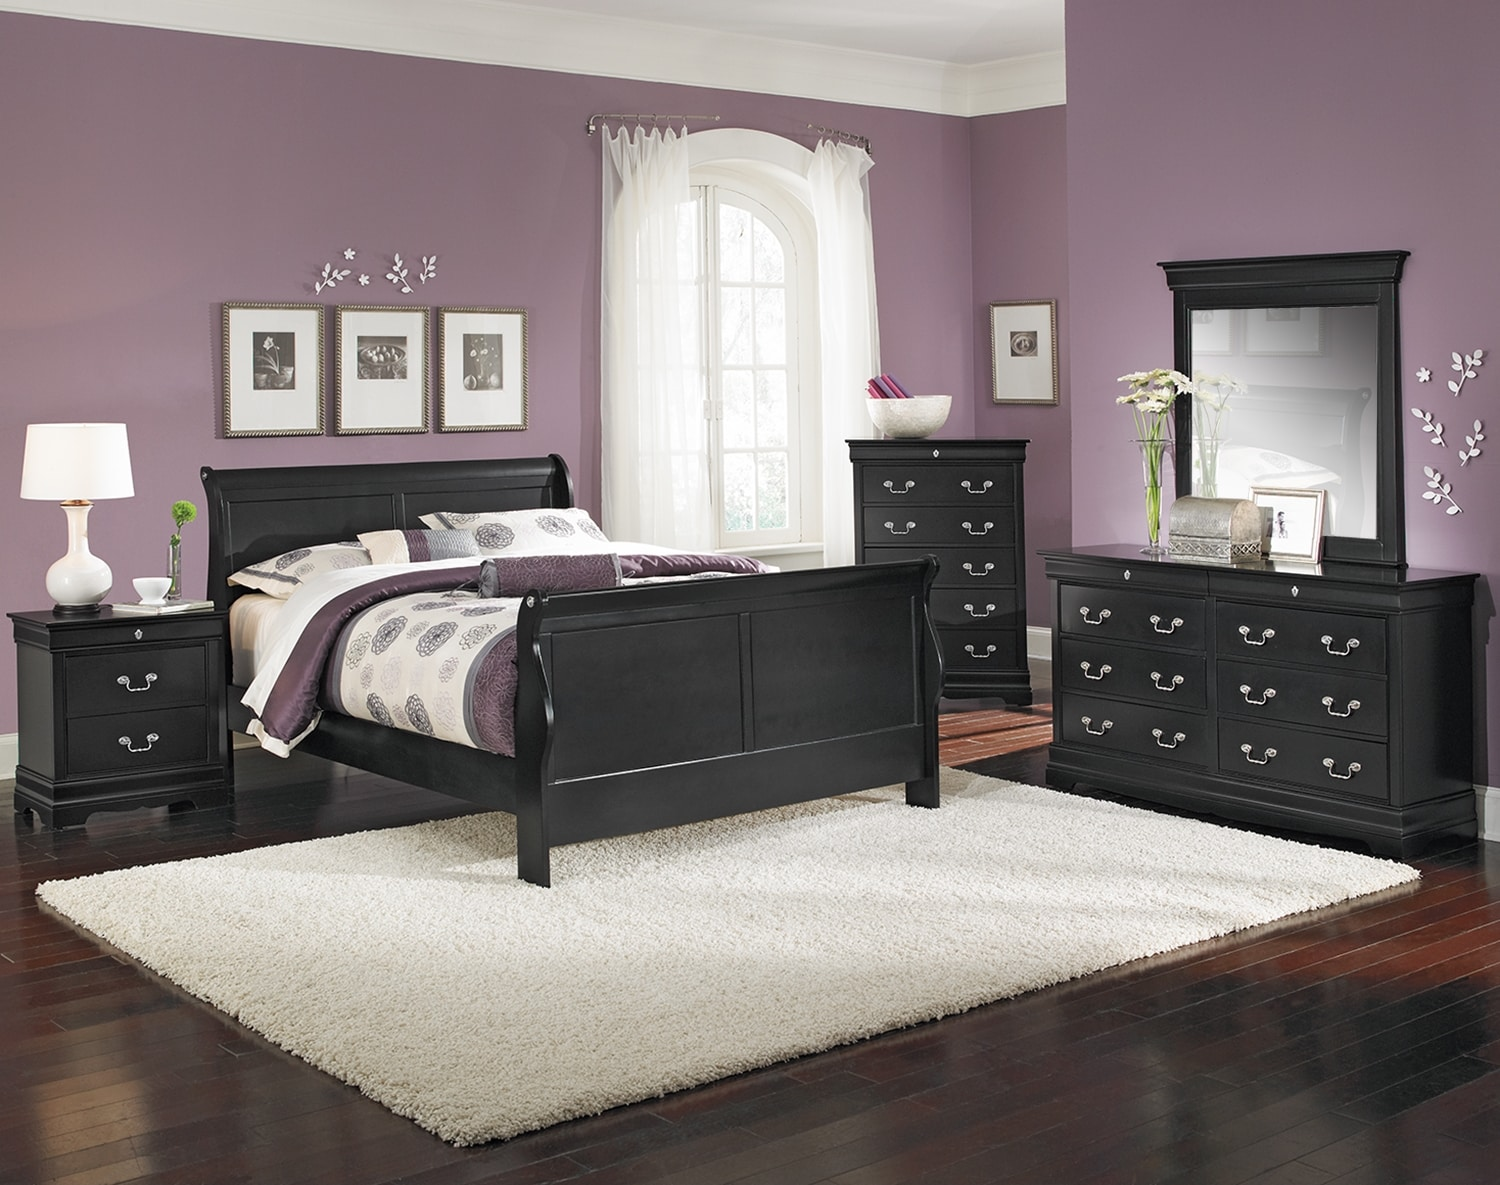 Bedroom Furniture - The Avignon Black Collection - Queen Bed